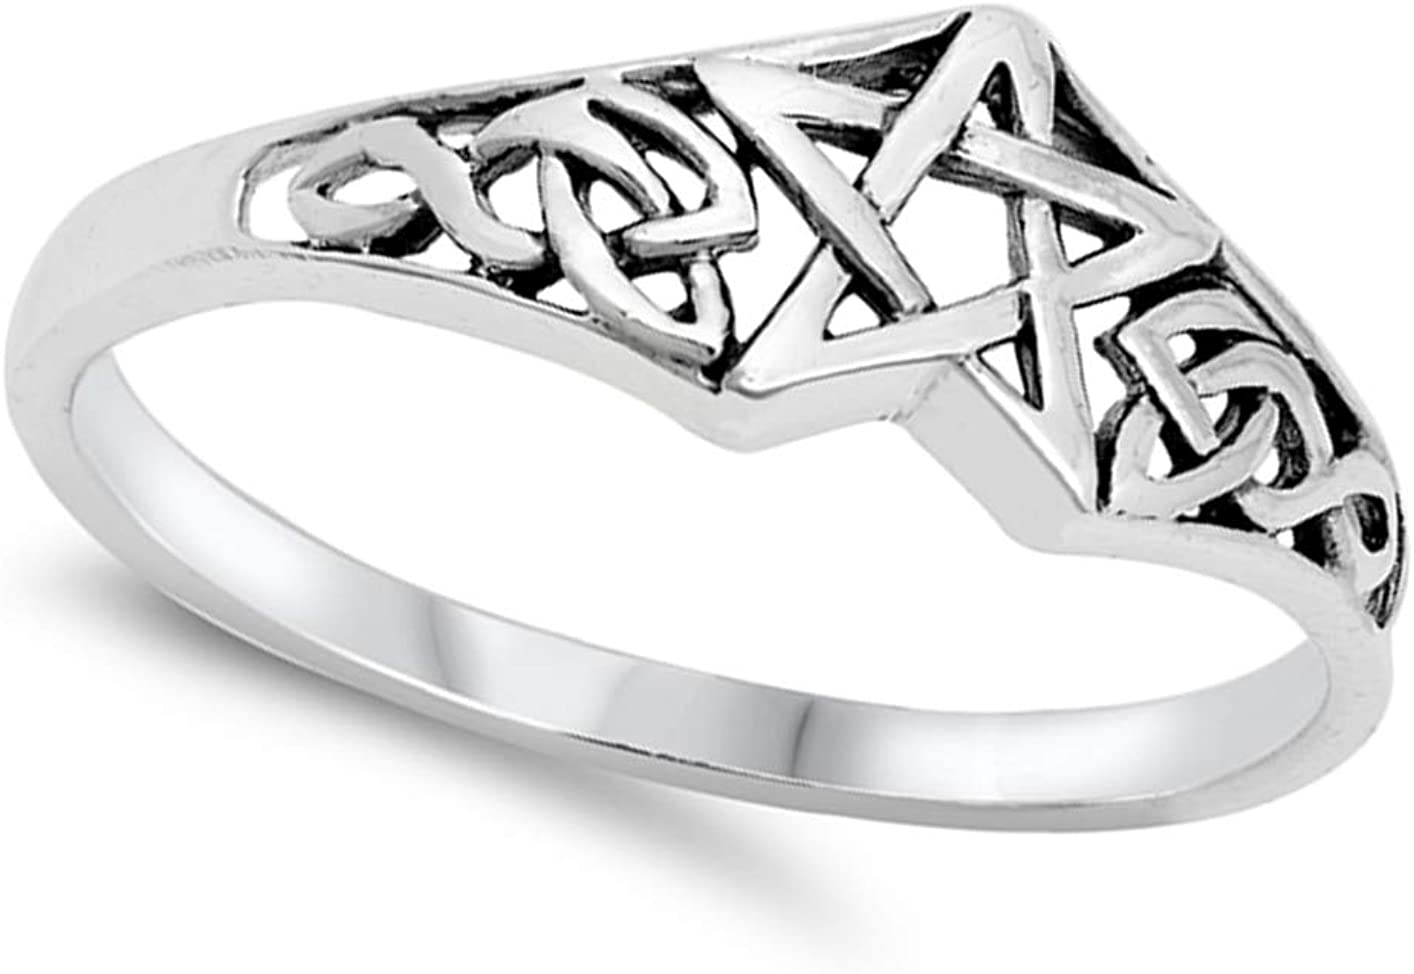 Celtic Knot Star Unique Ring New .925 Sterling Silver Band Sizes 4-10